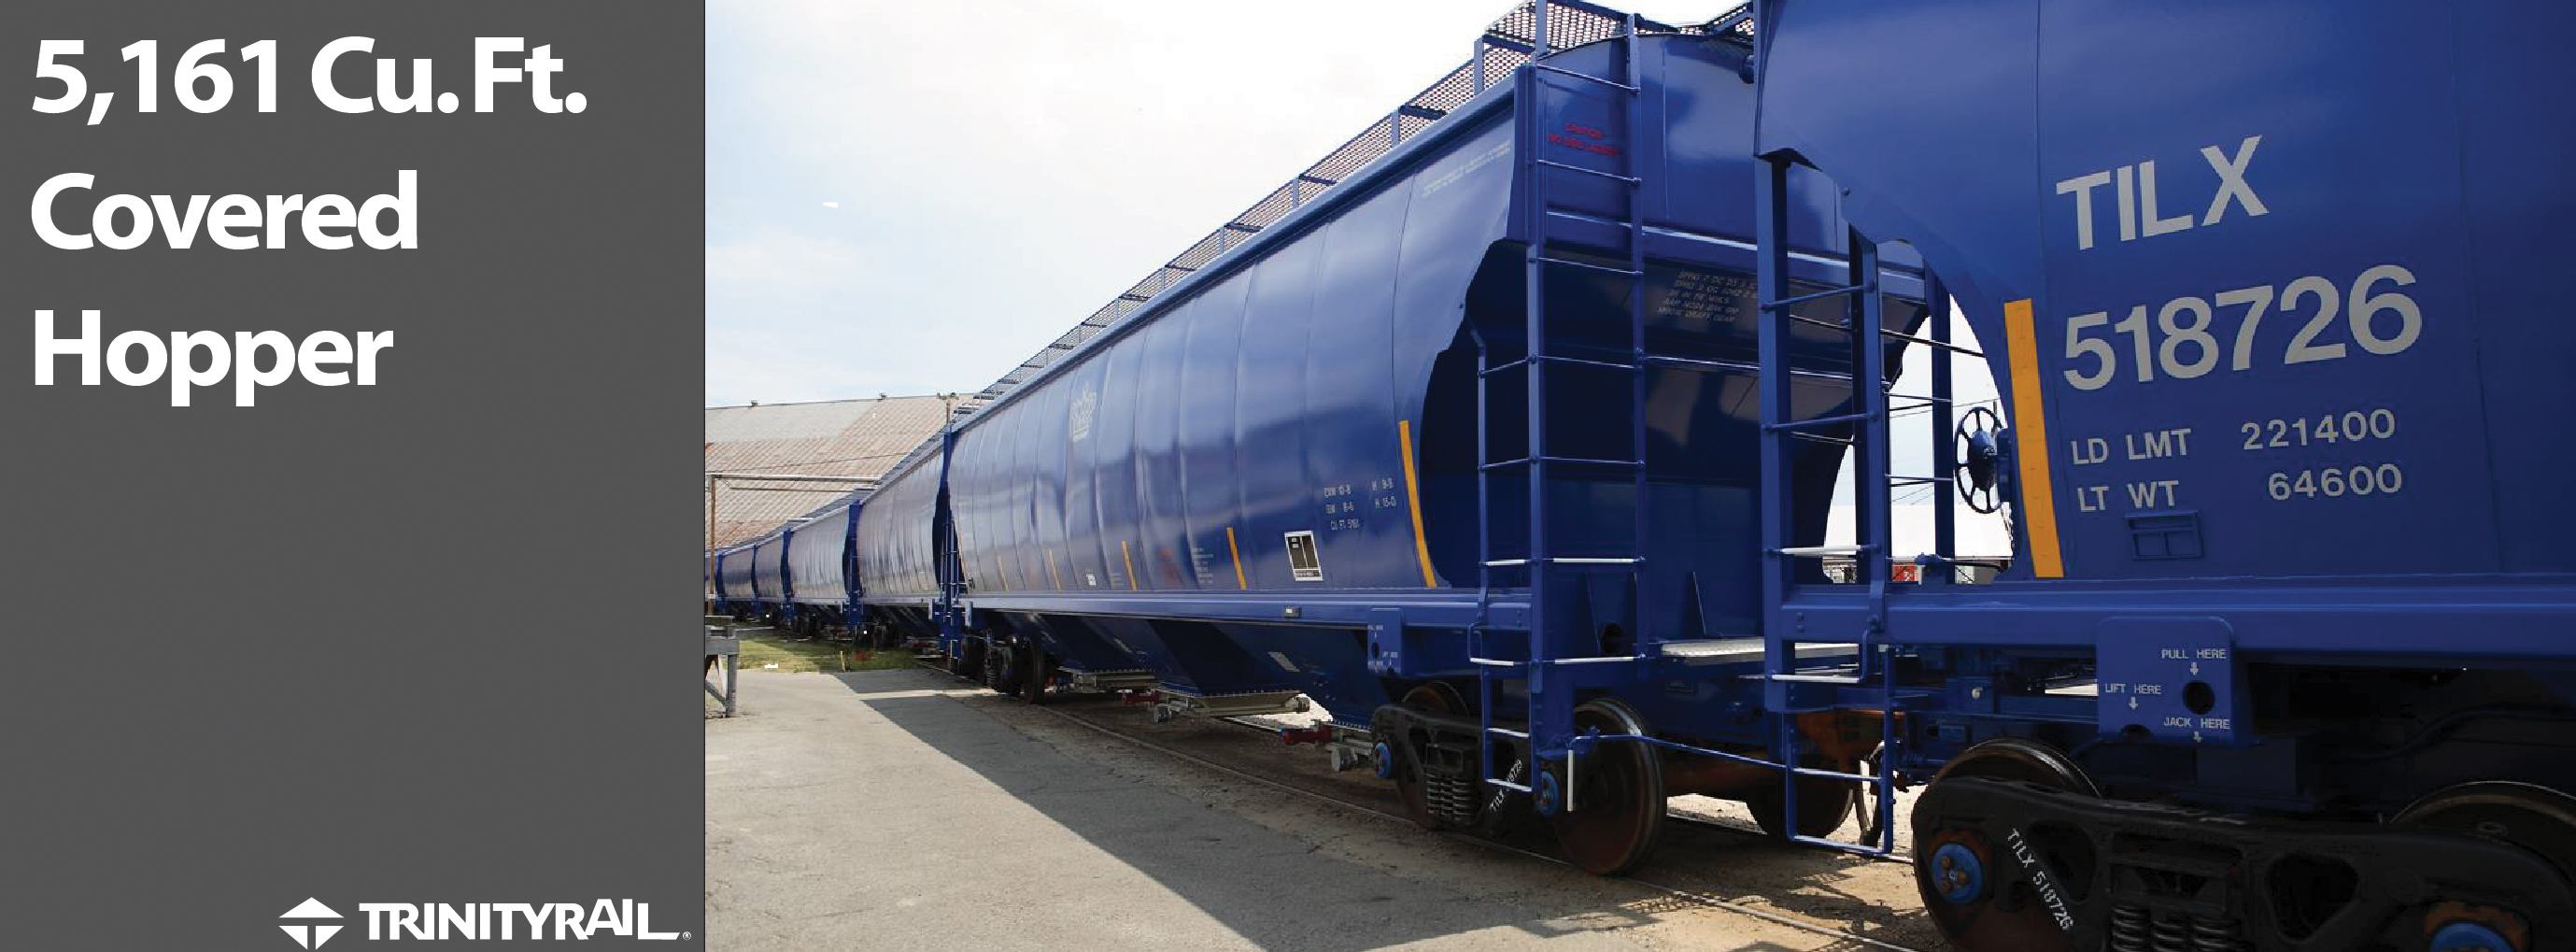 Rail - Rolling Stock (Freight) - Covered Hopper - 3-Bay Trinity 5161